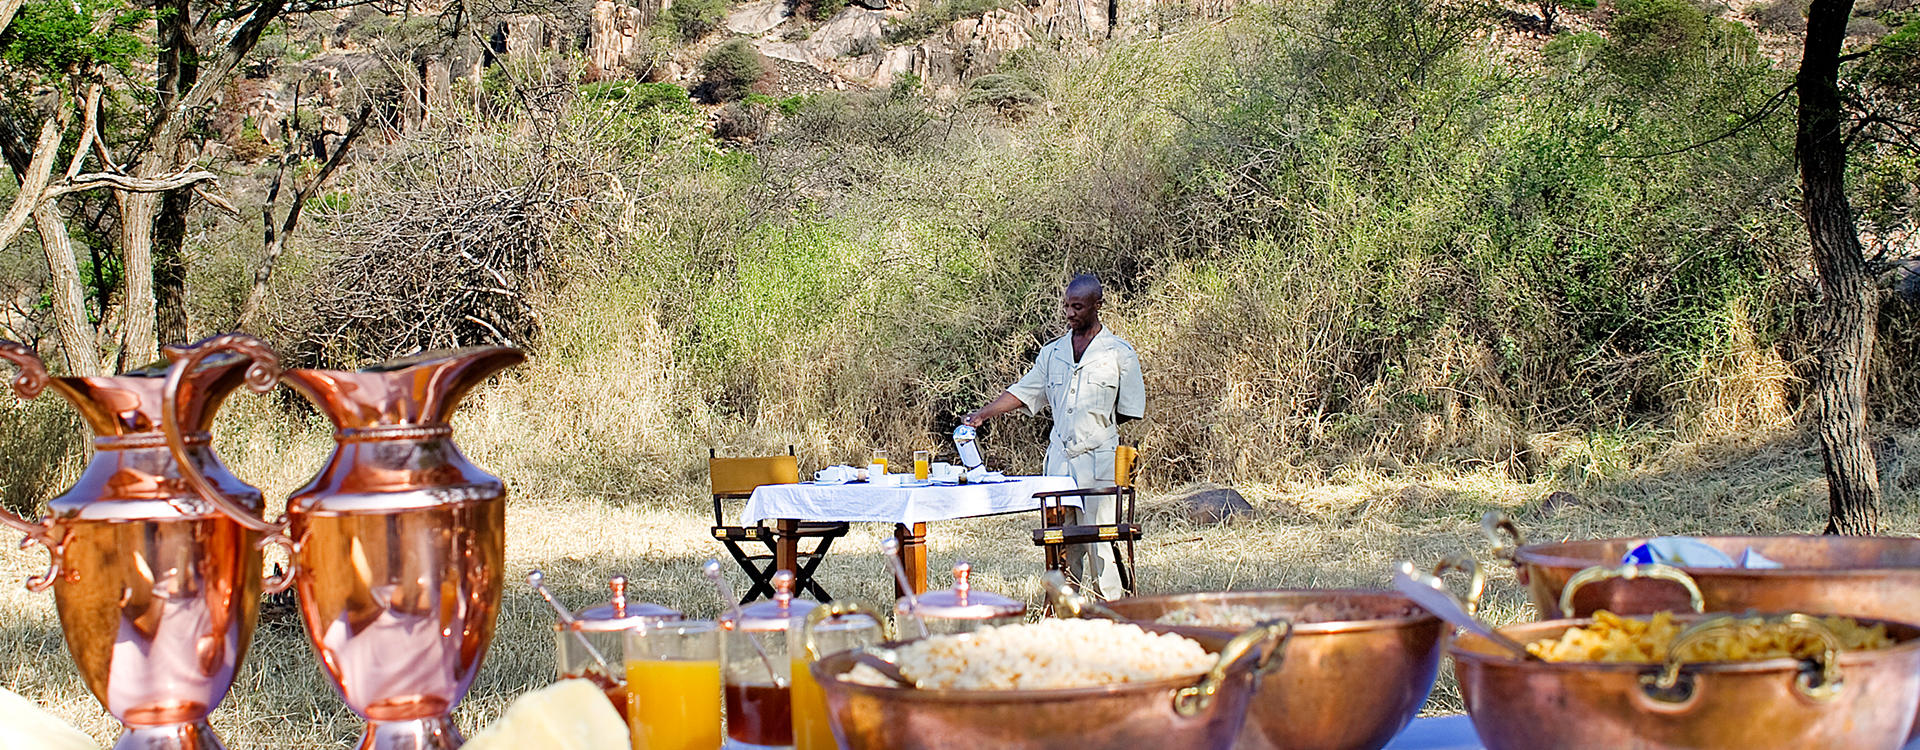 EL-Loisaba-Starbeds_Bush-Breakfast